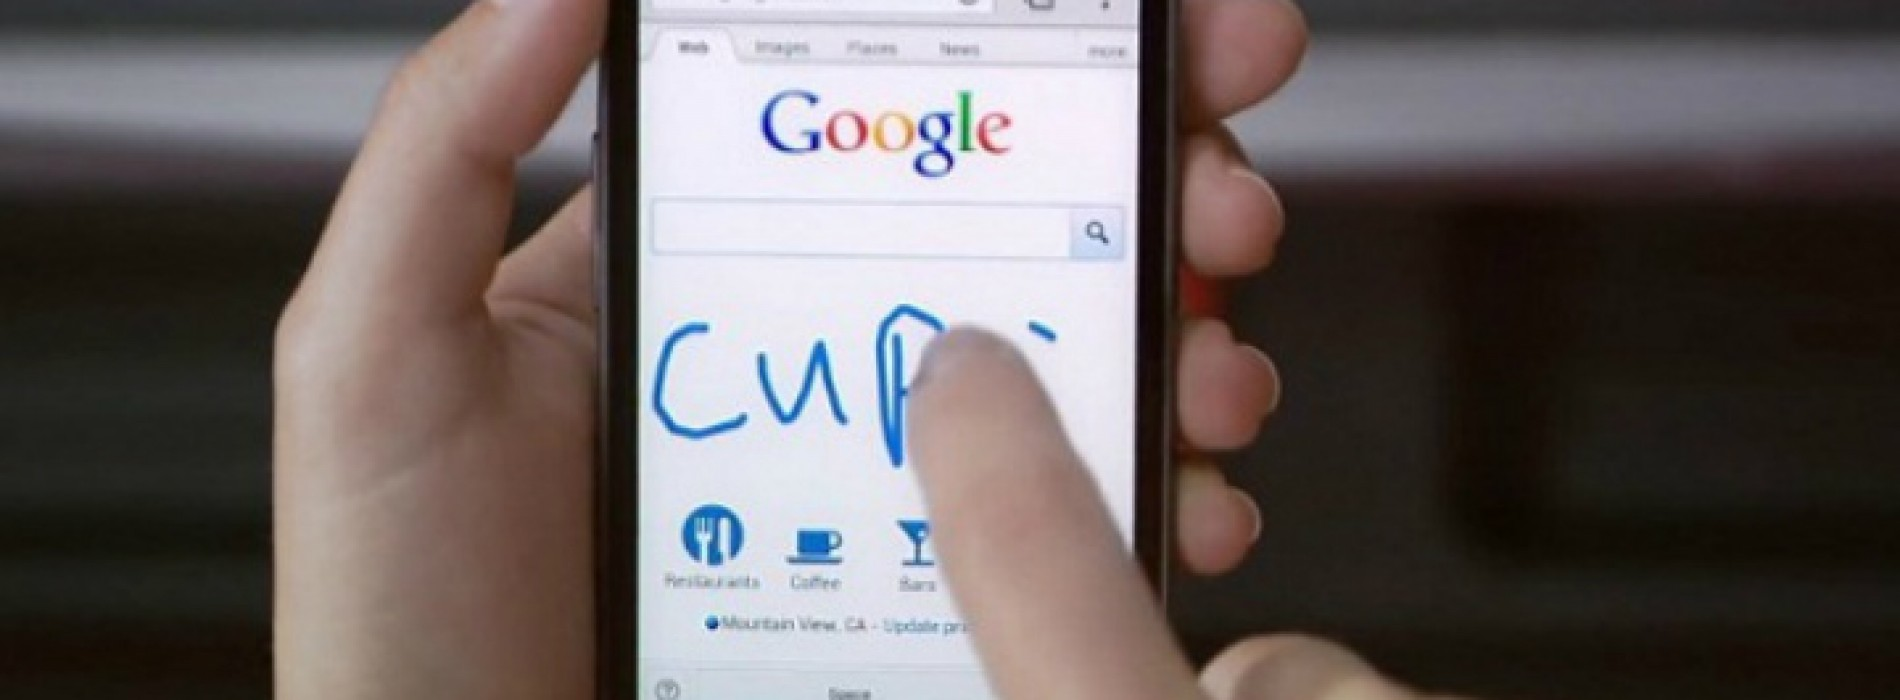 Google Handwrite updated with improved recognition, multi-character input, and more